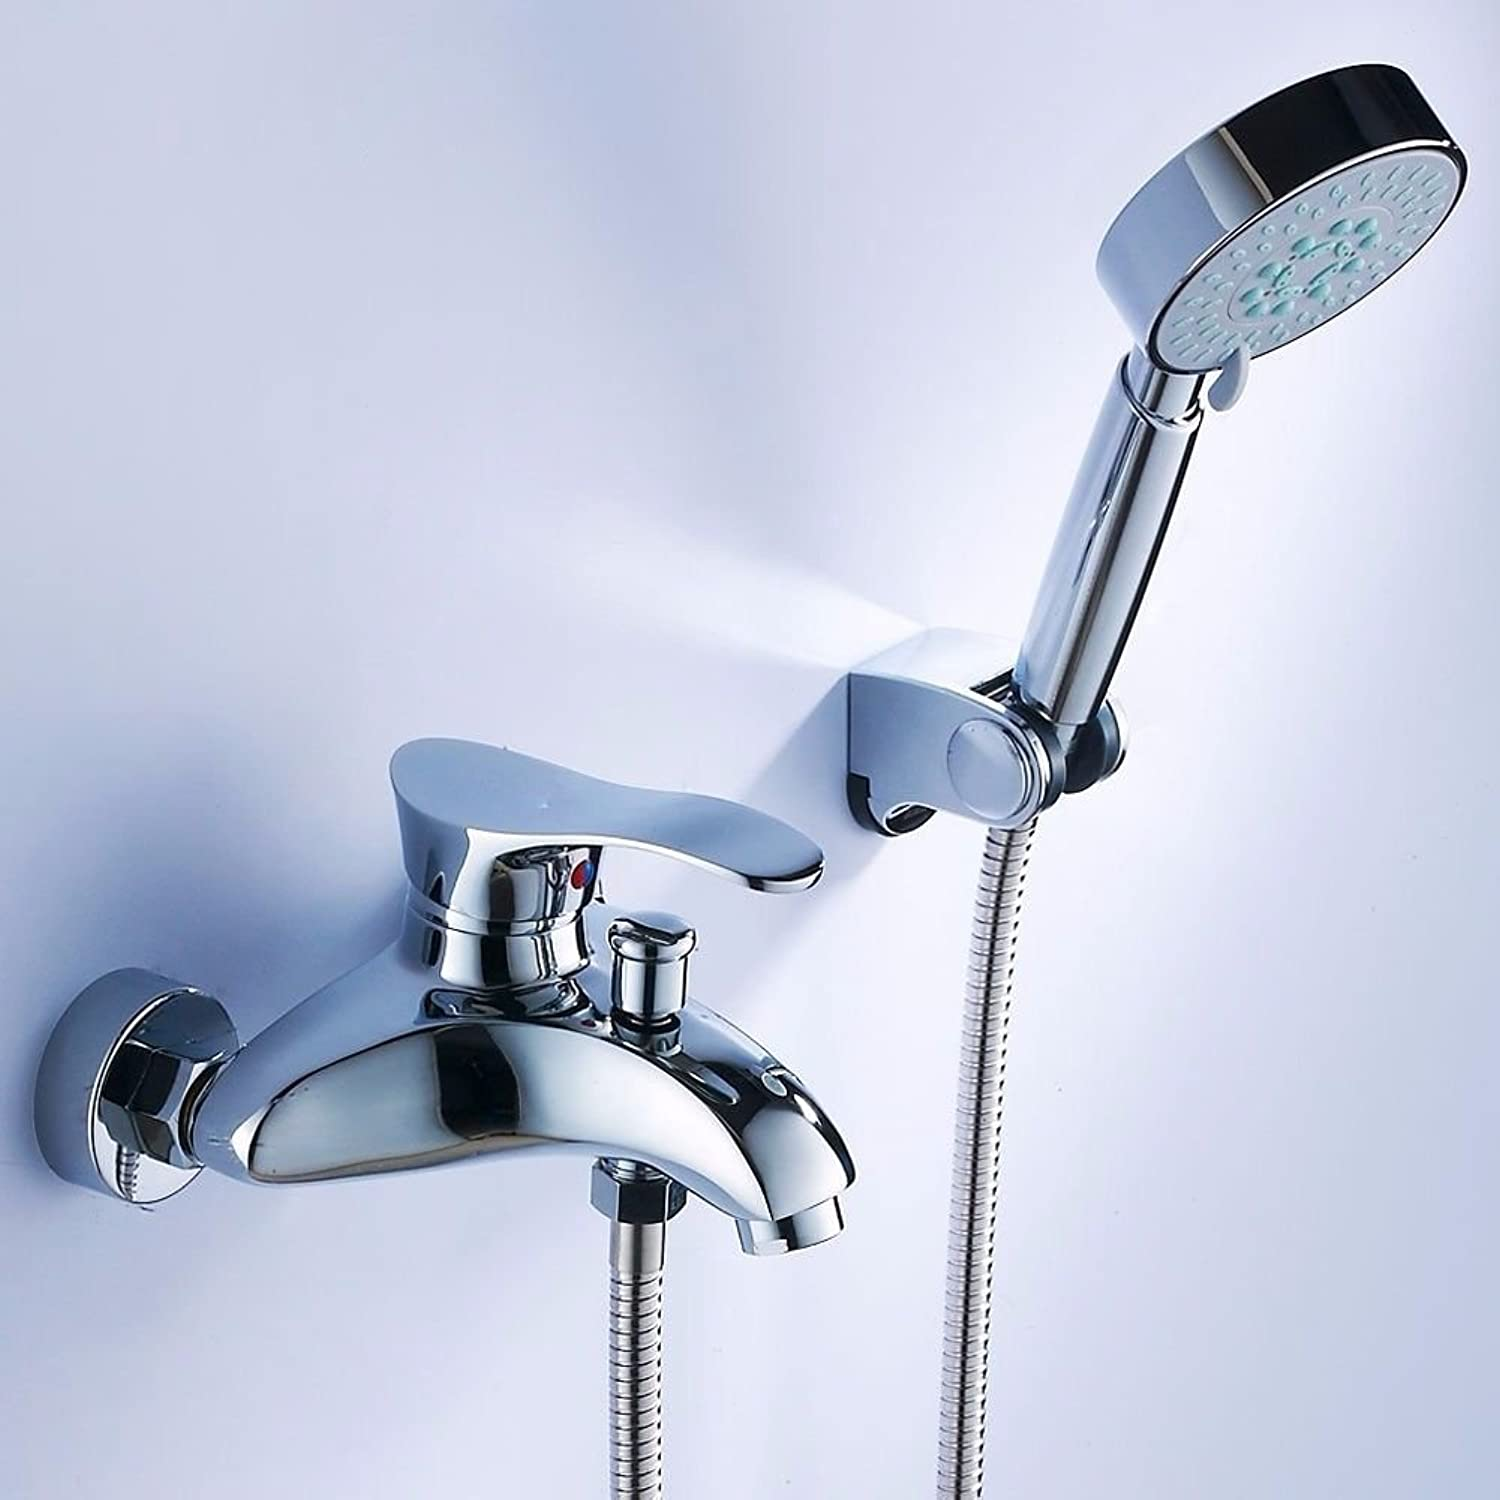 Lalaky Taps Faucet Kitchen Mixer Sink Waterfall Bathroom Mixer Basin Mixer Tap for Kitchen Bathroom and Washroom All Copper Mixing Valve Hot and Cold